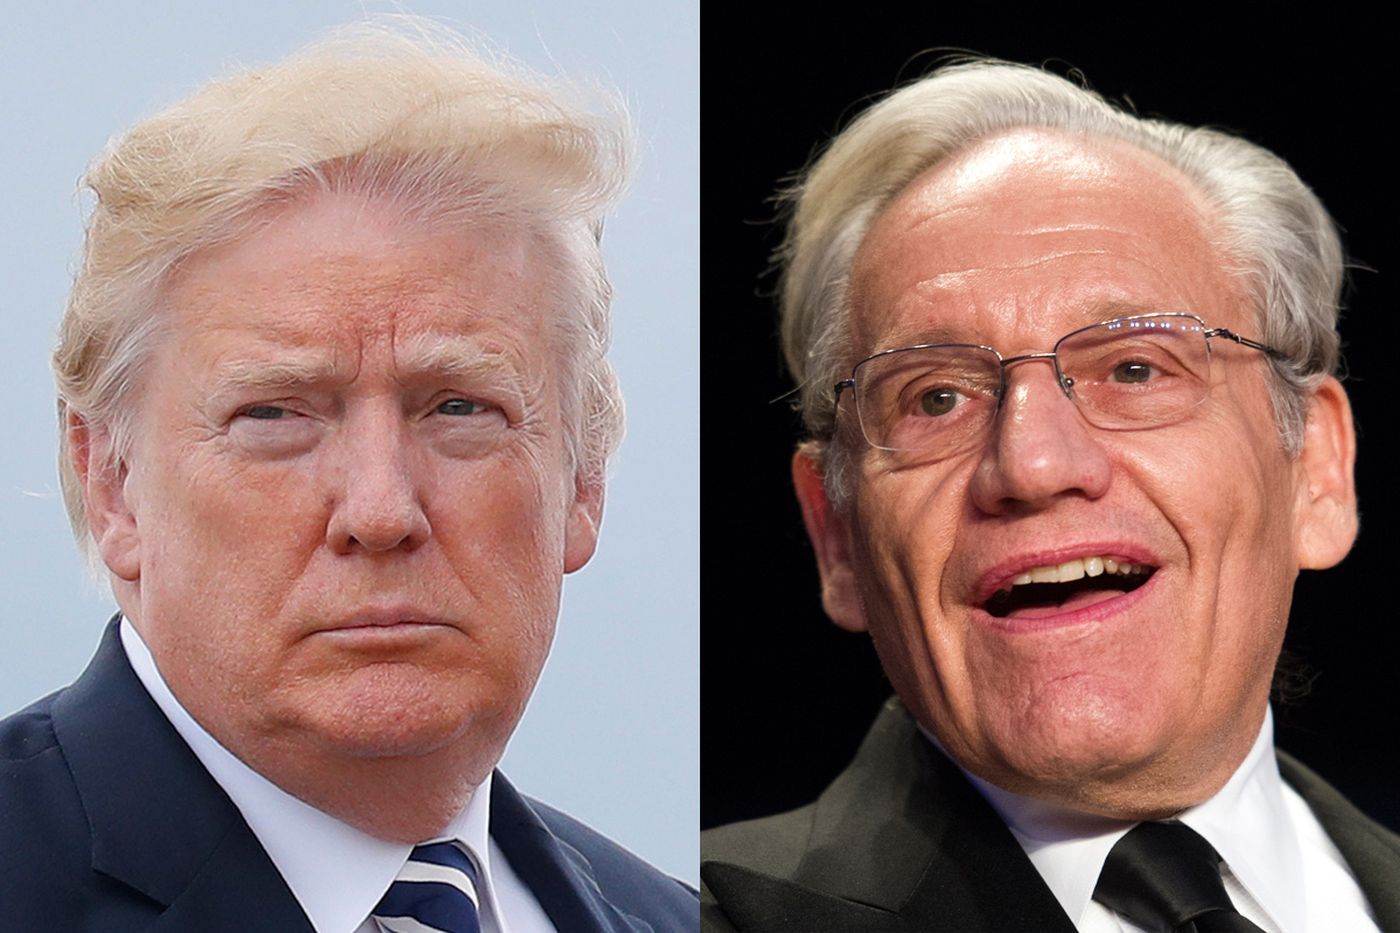 Donald Trump presidency called 'Crazytown' in new Bob Woodward book